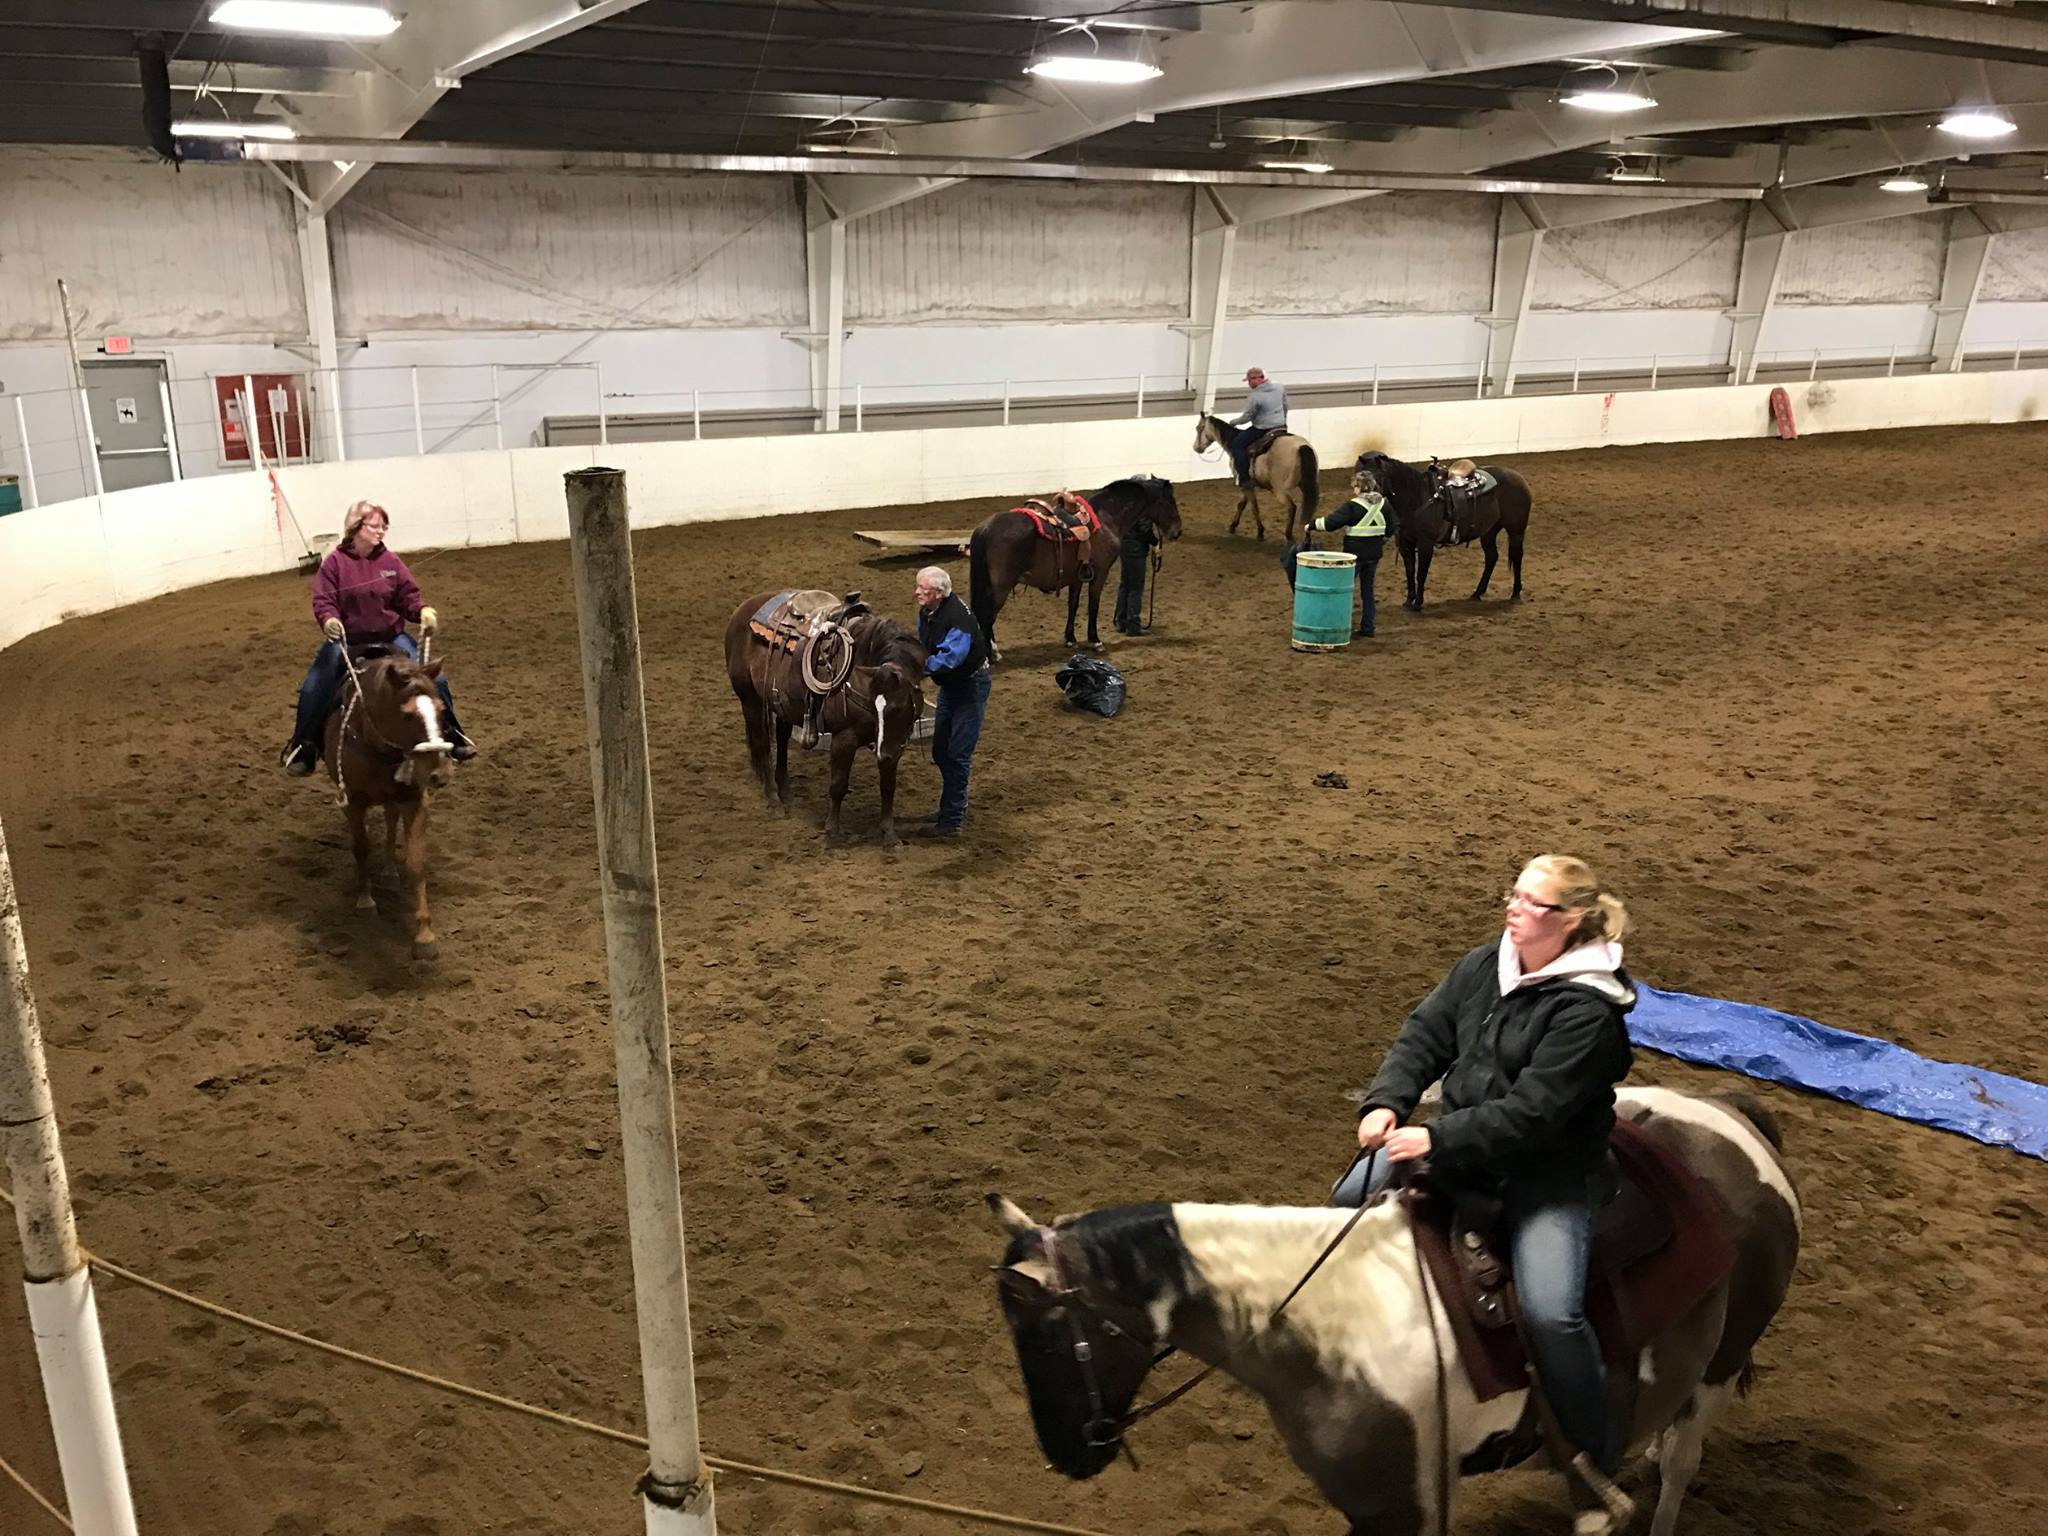 horse riders in arena